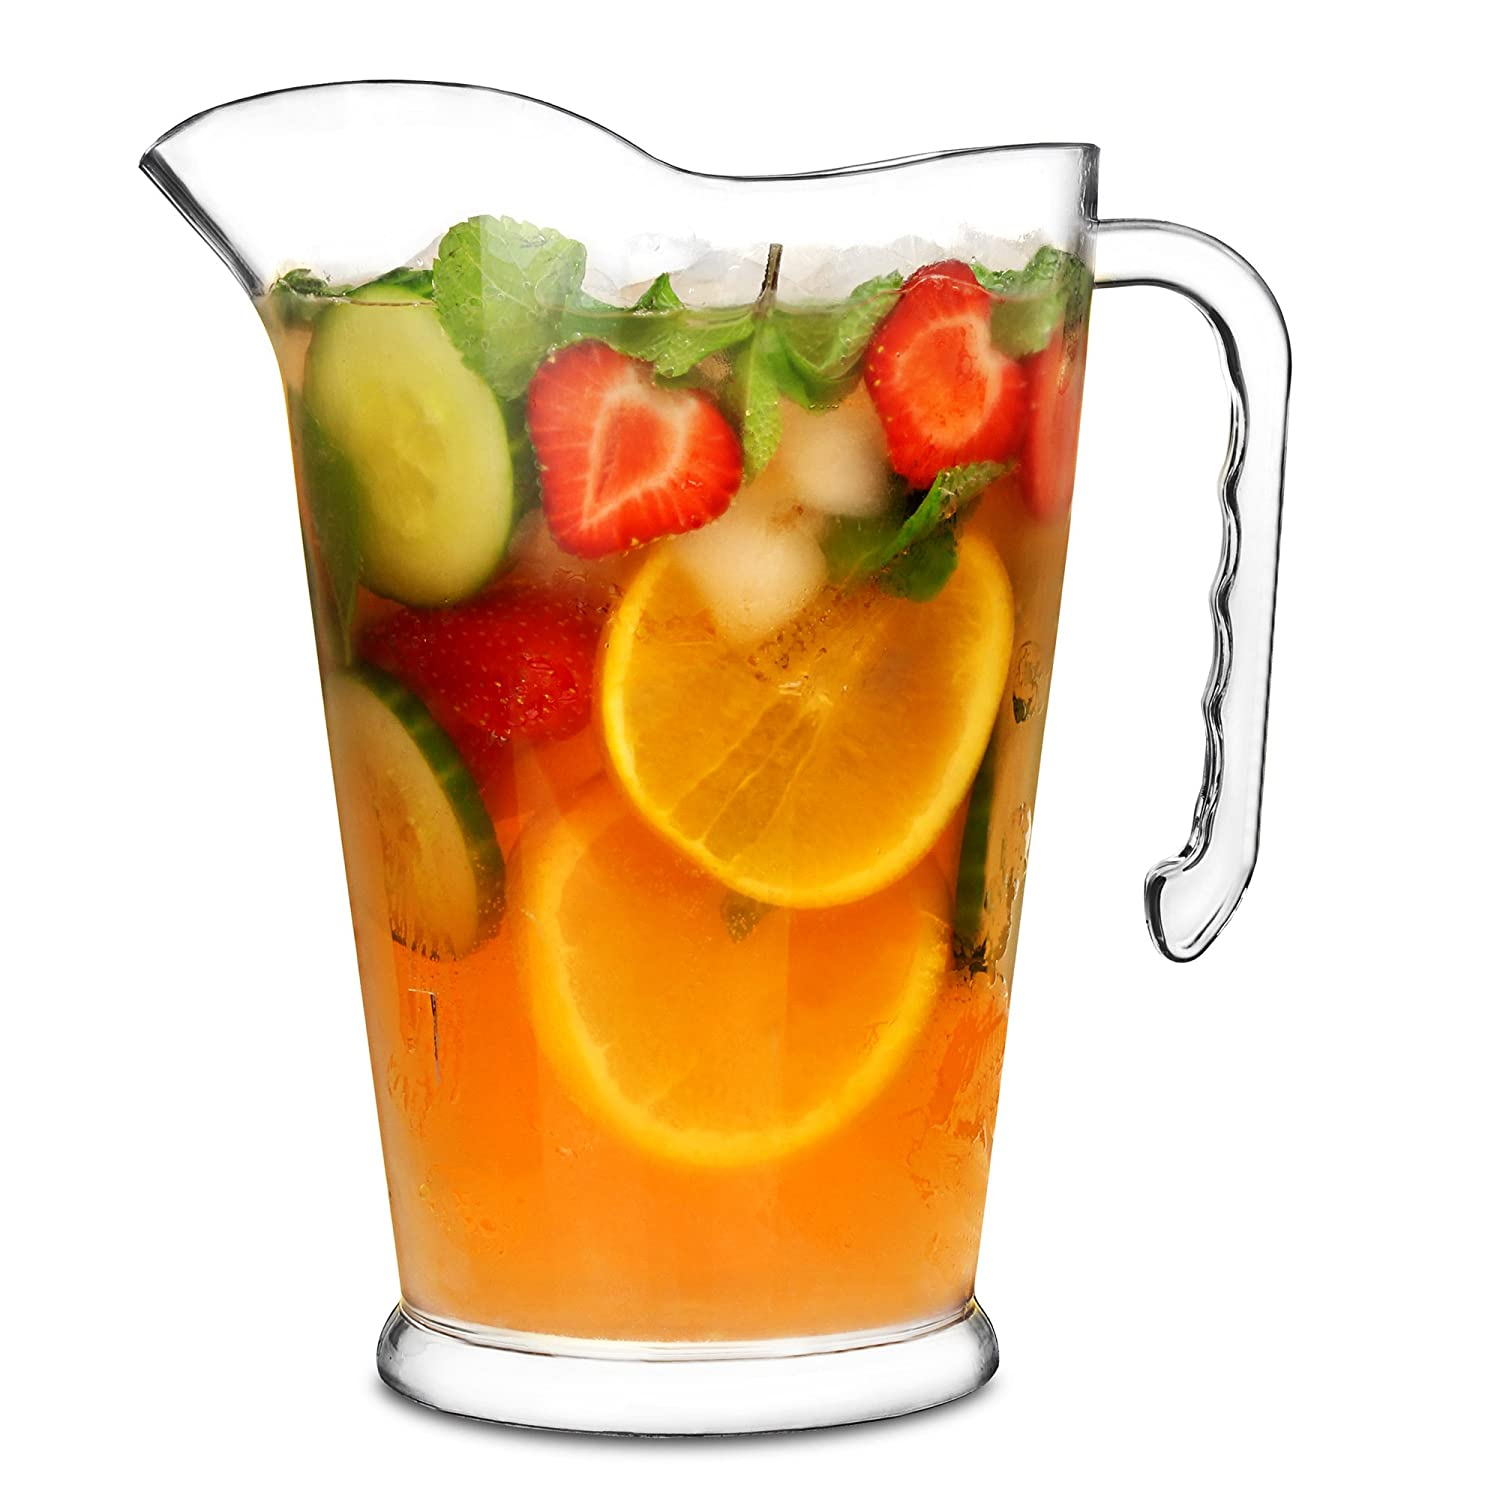 Stackable Plastic Pitcher Jug 1.5ltr Case of 24 Cocktail Jugs